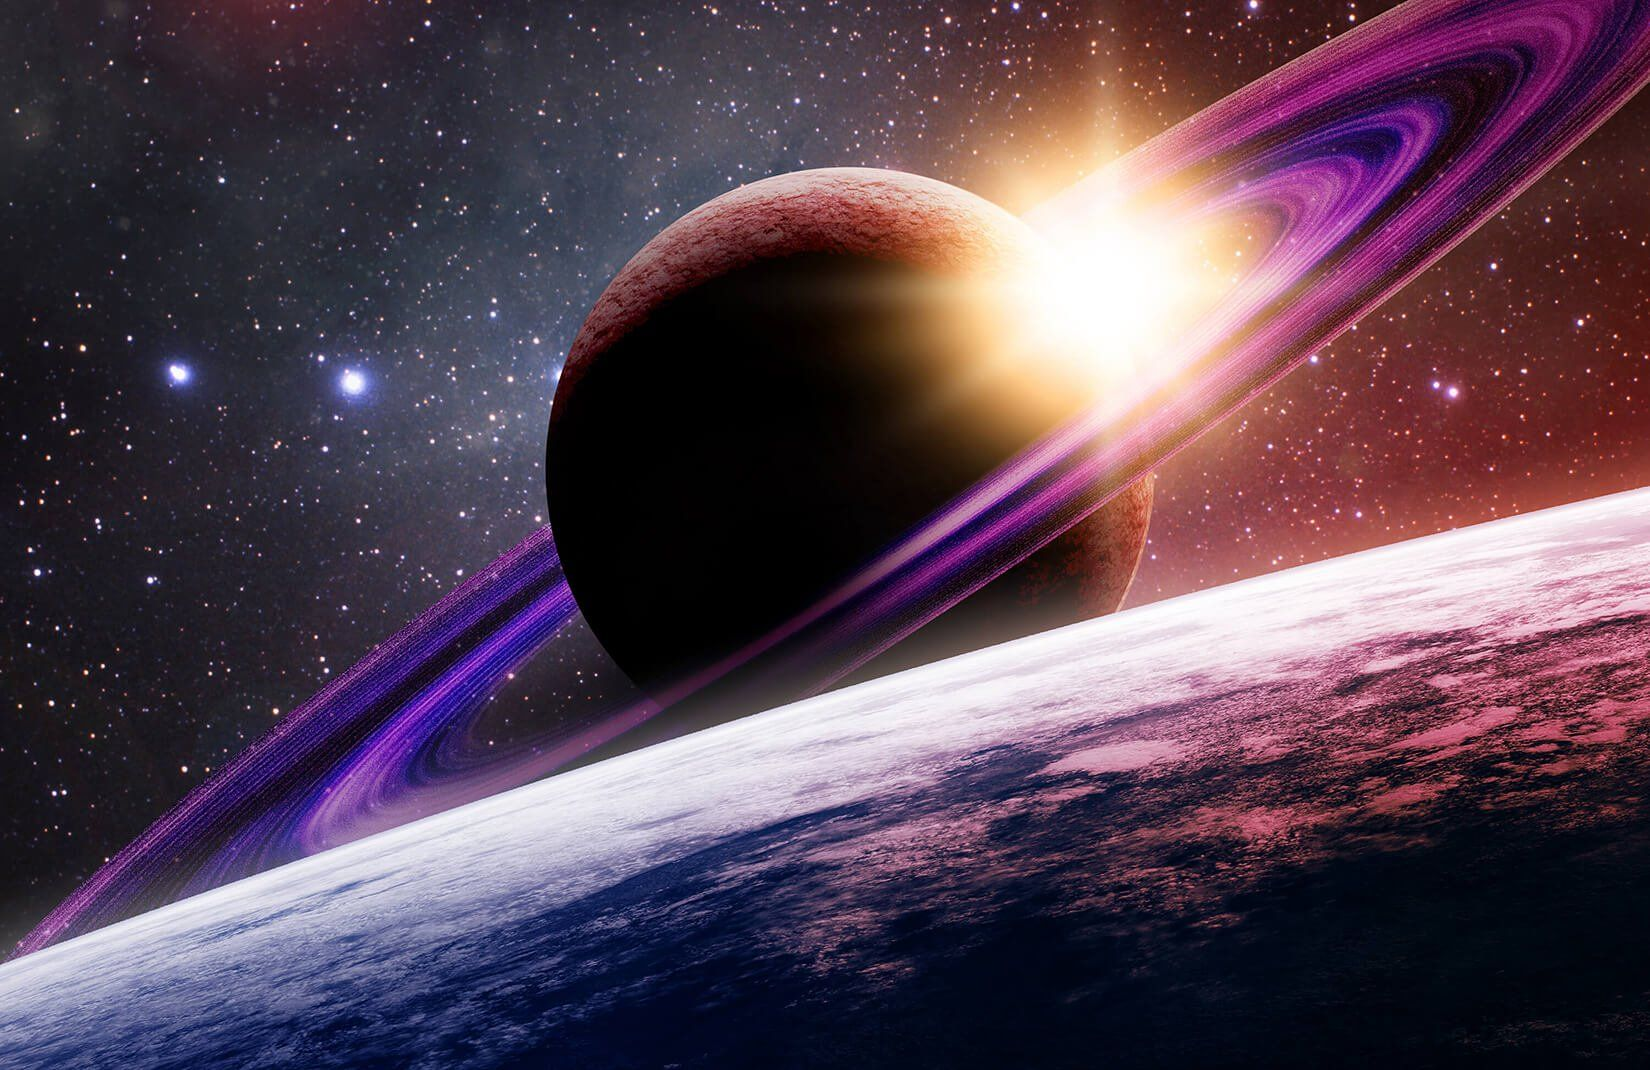 Pin On Jack S Room Outer space earth sunset space planet